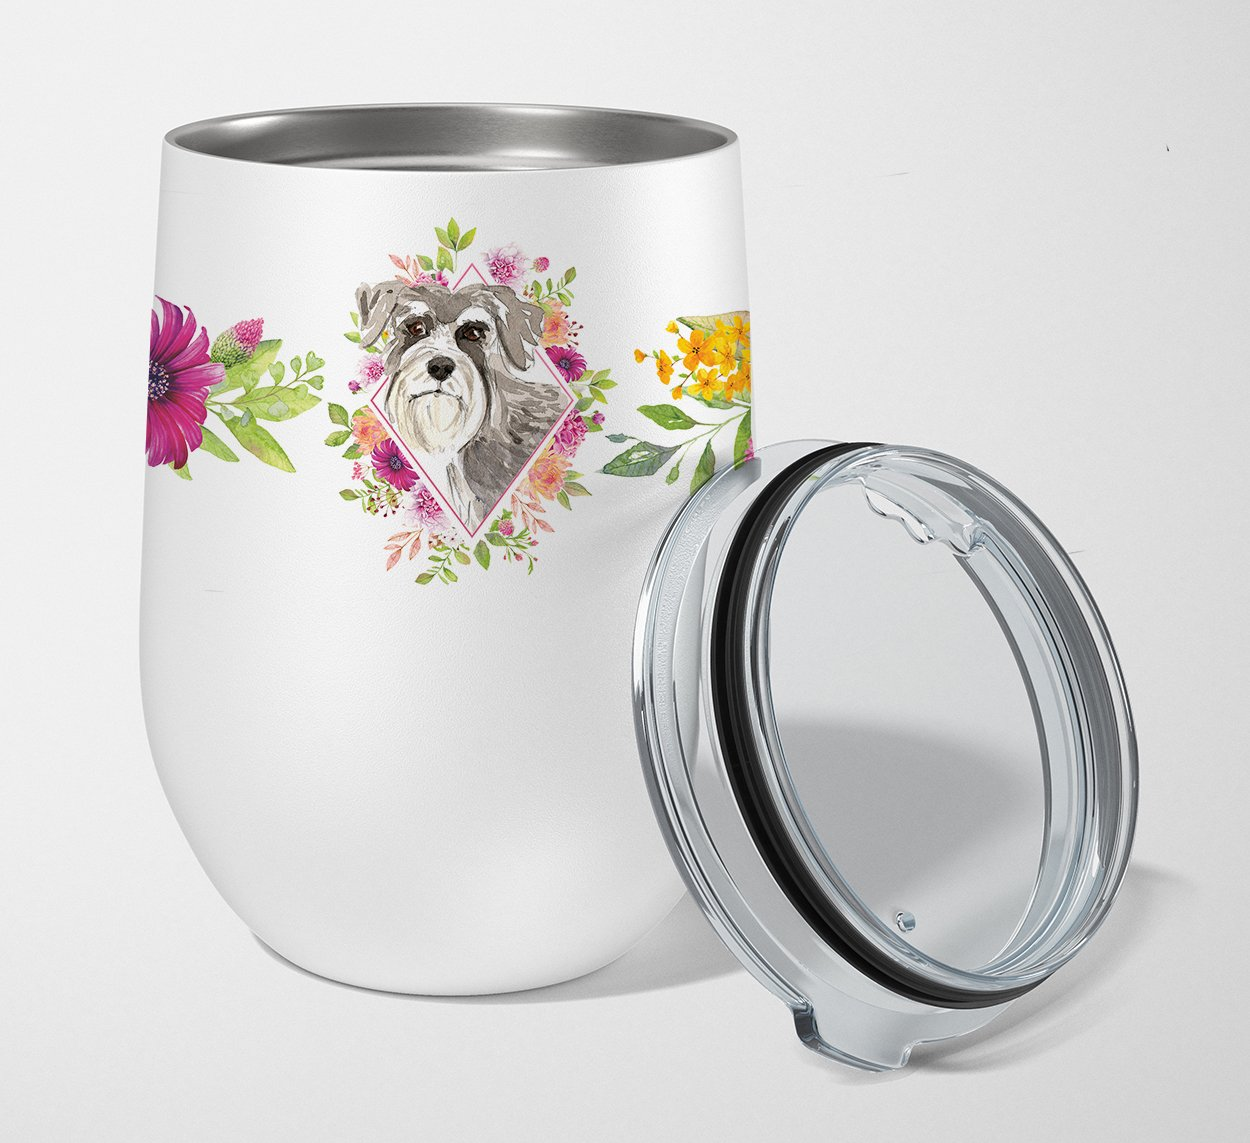 Schnauzer #1 Pink Flowers Stainless Steel 12 oz Stemless Wine Glass CK4215TBL12 by Caroline's Treasures